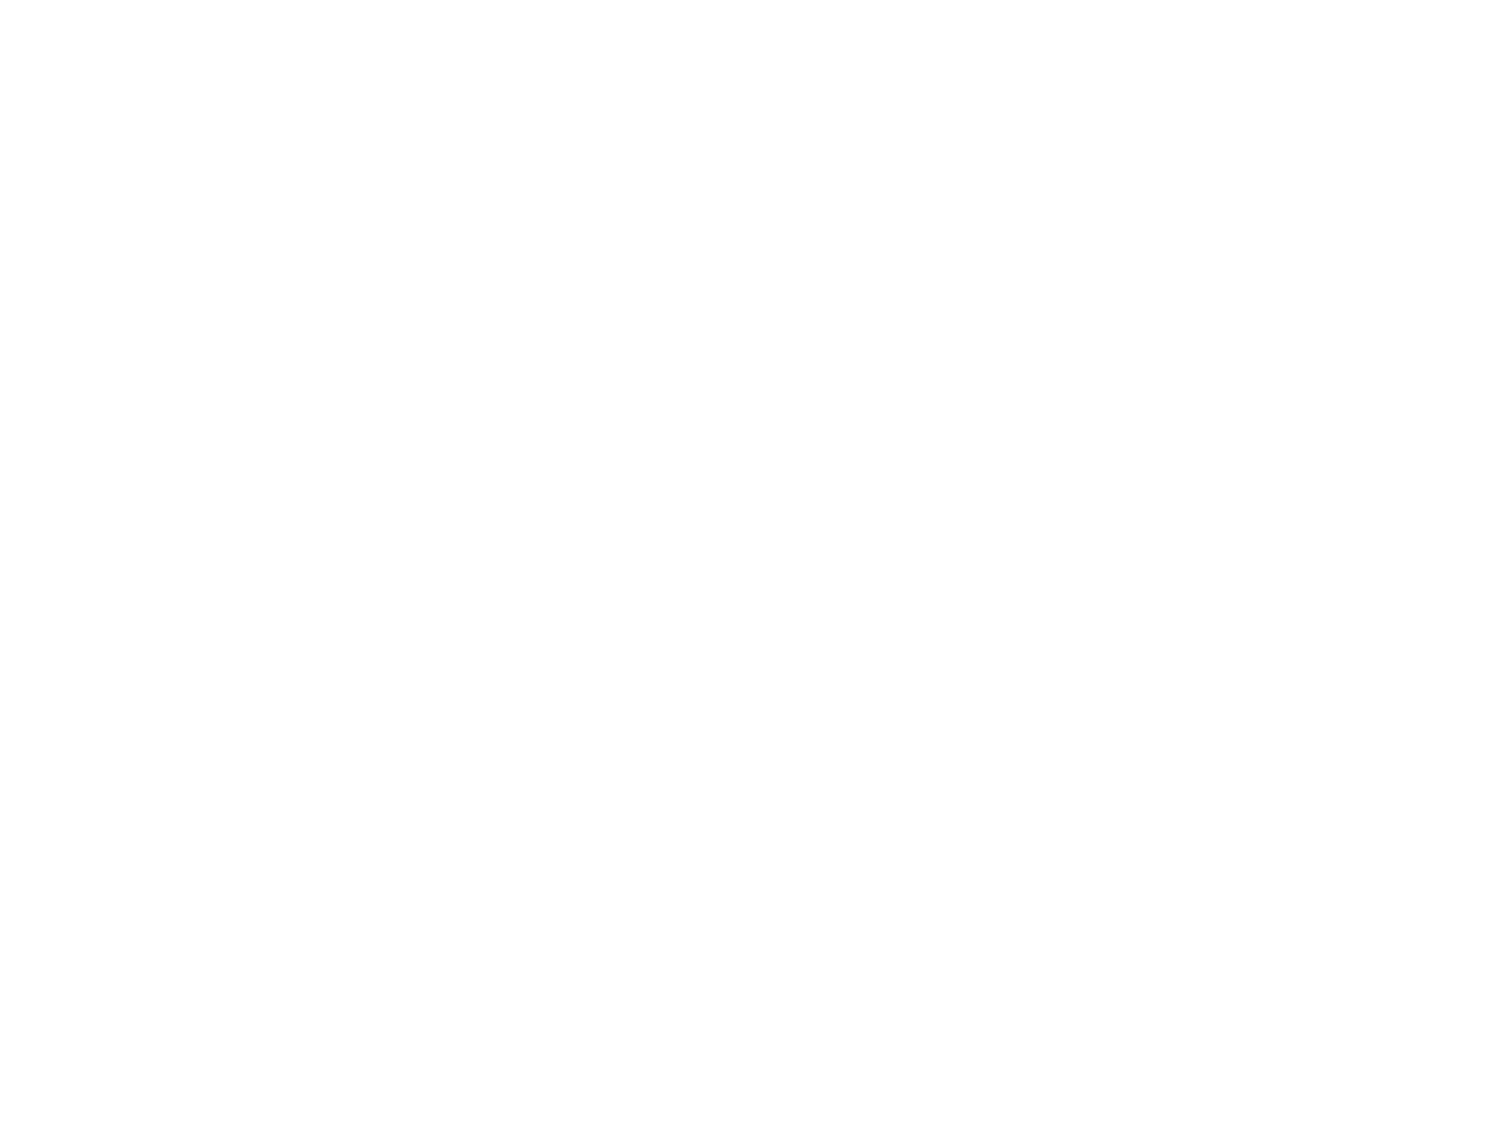 City View at Metreon